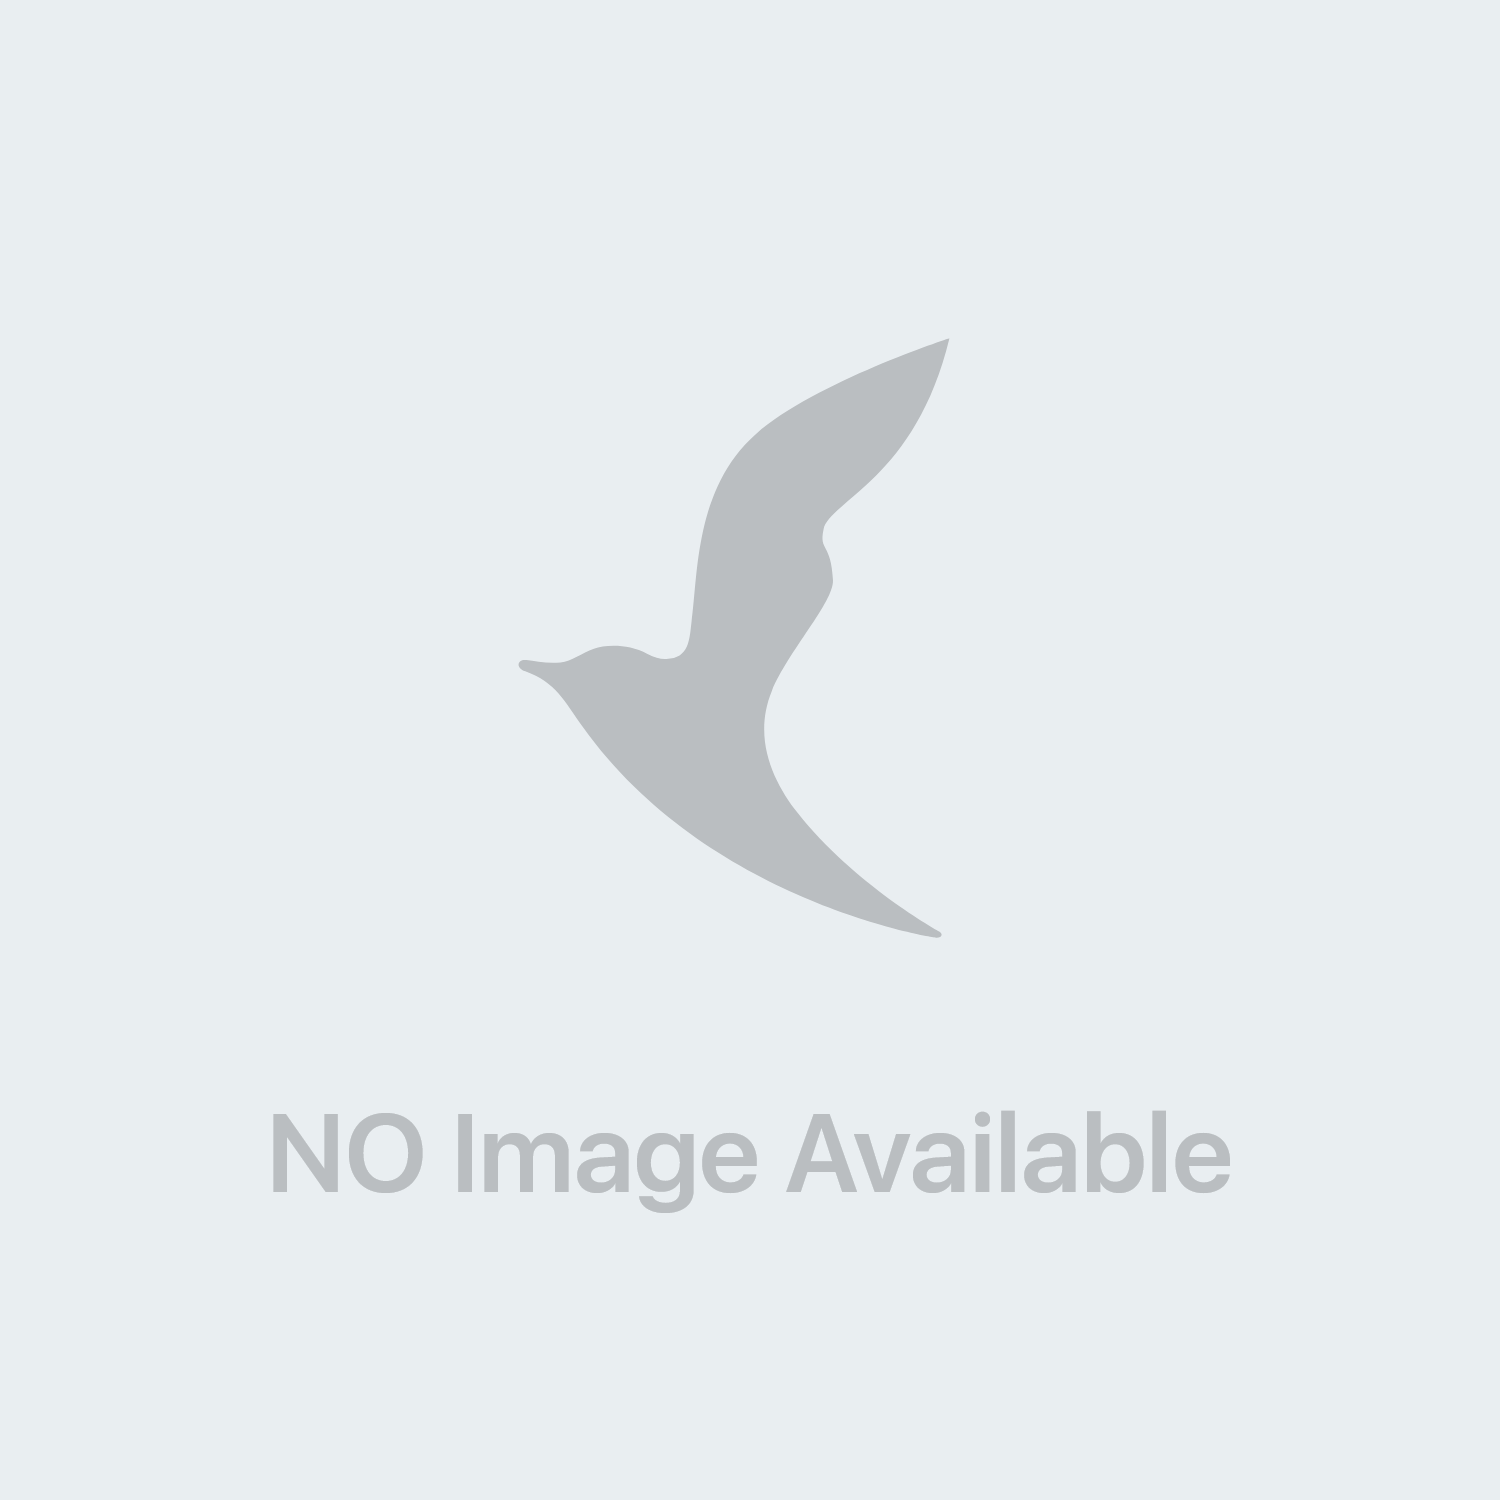 Mgk Vis Drink Lemonade Integratore Sali Minerali 500ml